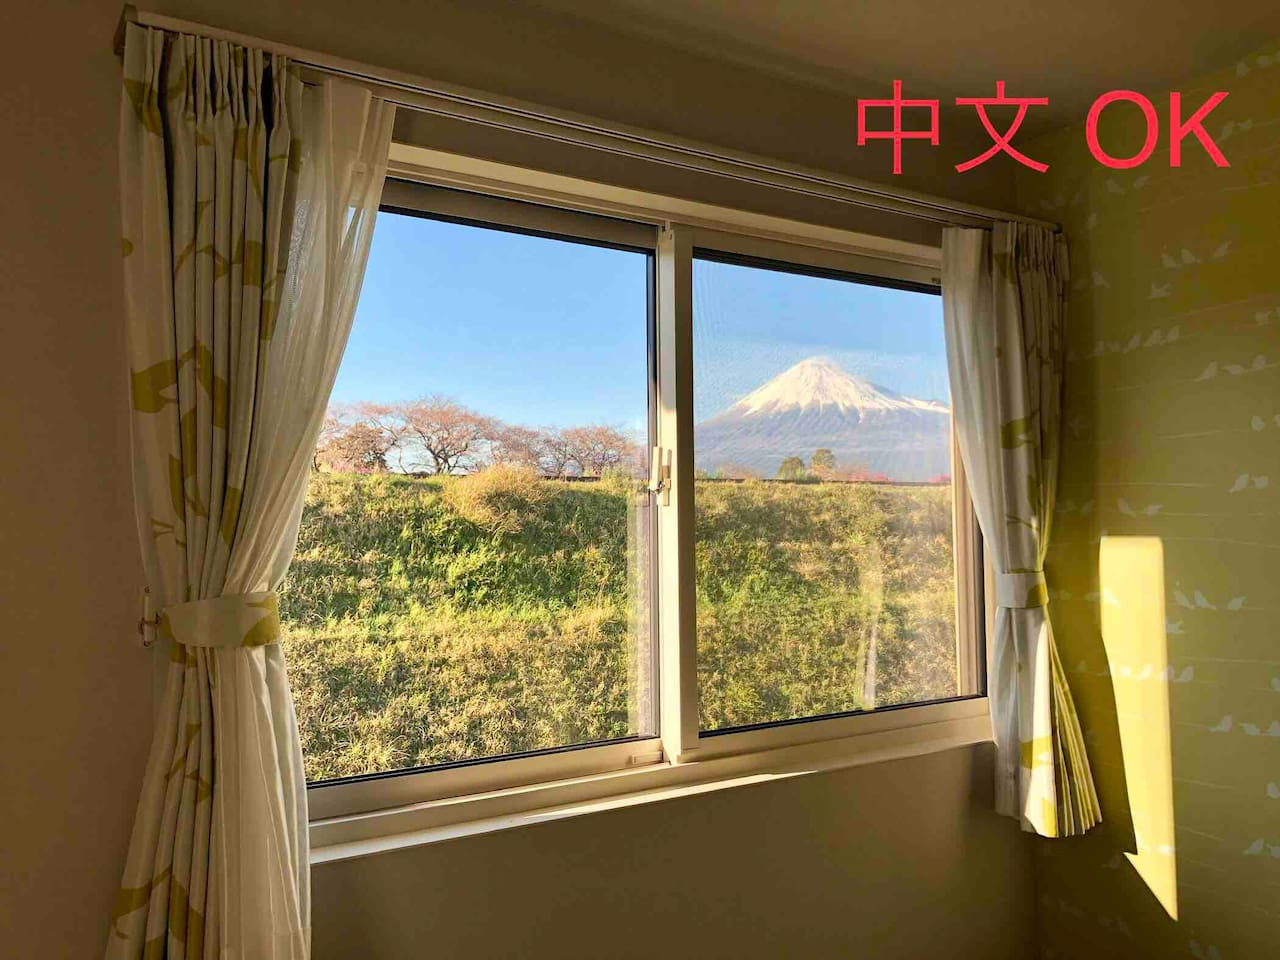 2F 宿泊室の窓から富士山が見えます You can see Mt.Fuji from window in guest room 从卧室的窗户可以看见富士山